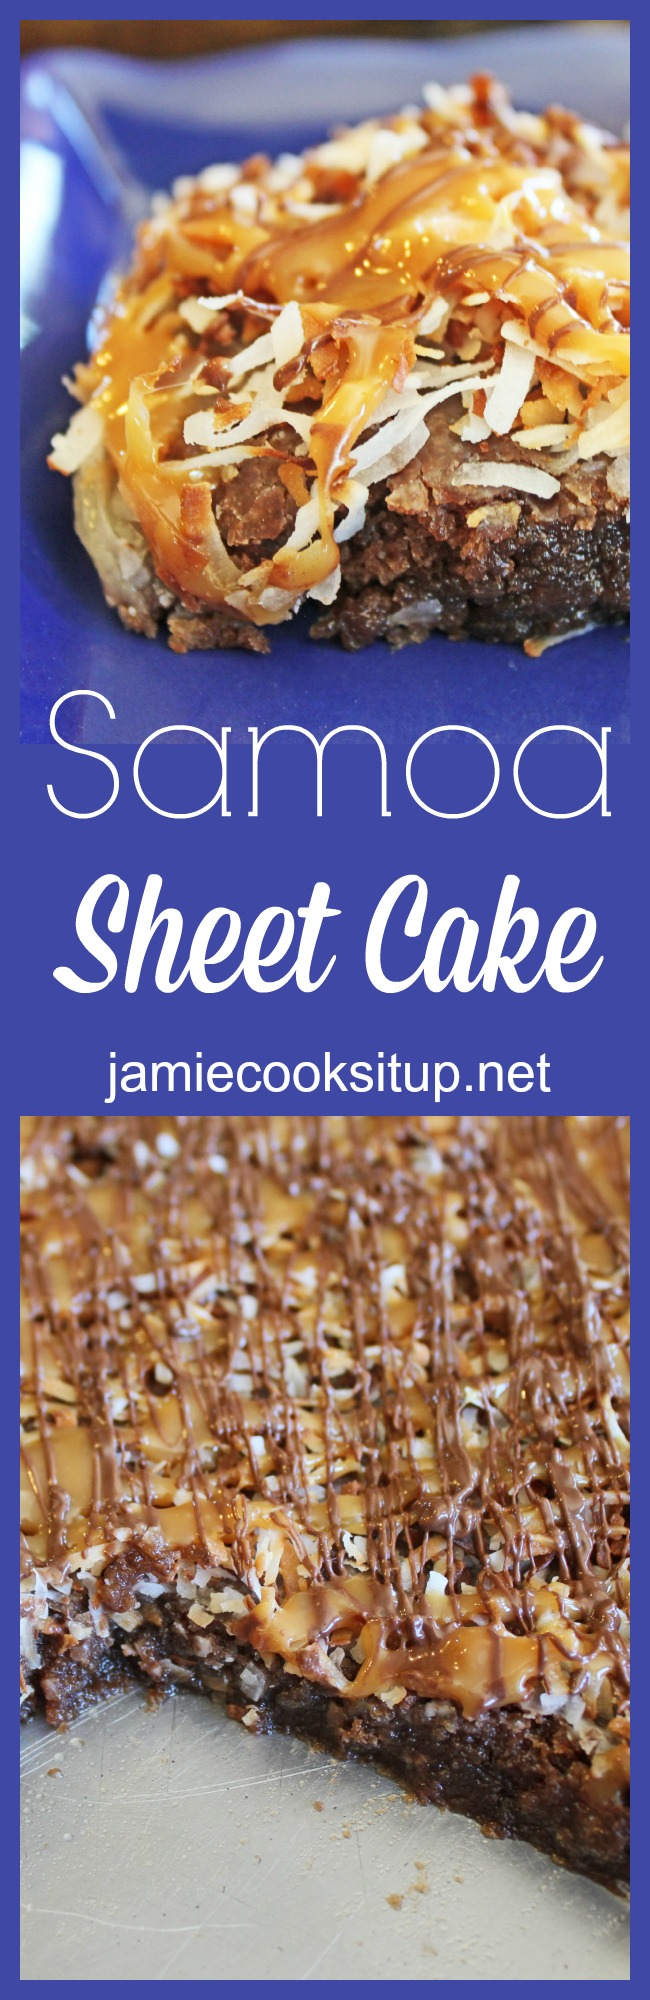 Samoa Sheet Cake from Jamie Cooks It Up